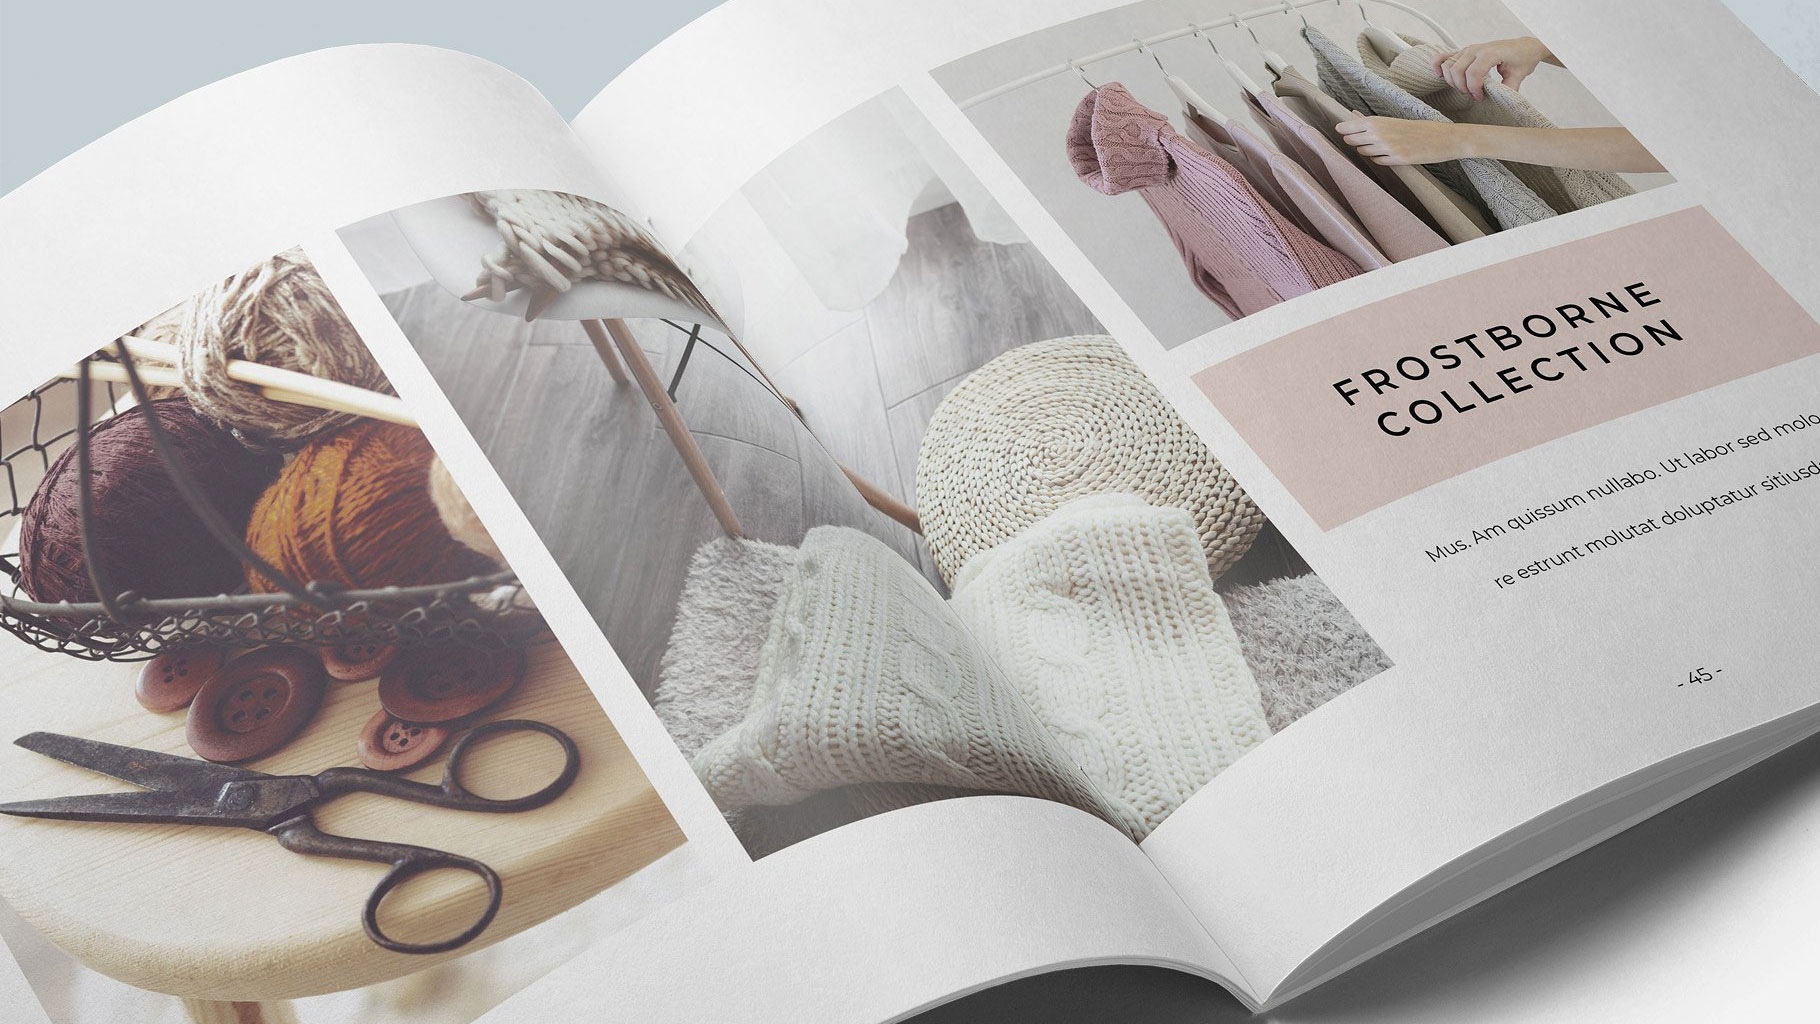 25 top brochure templates for designers | Creative Bloq